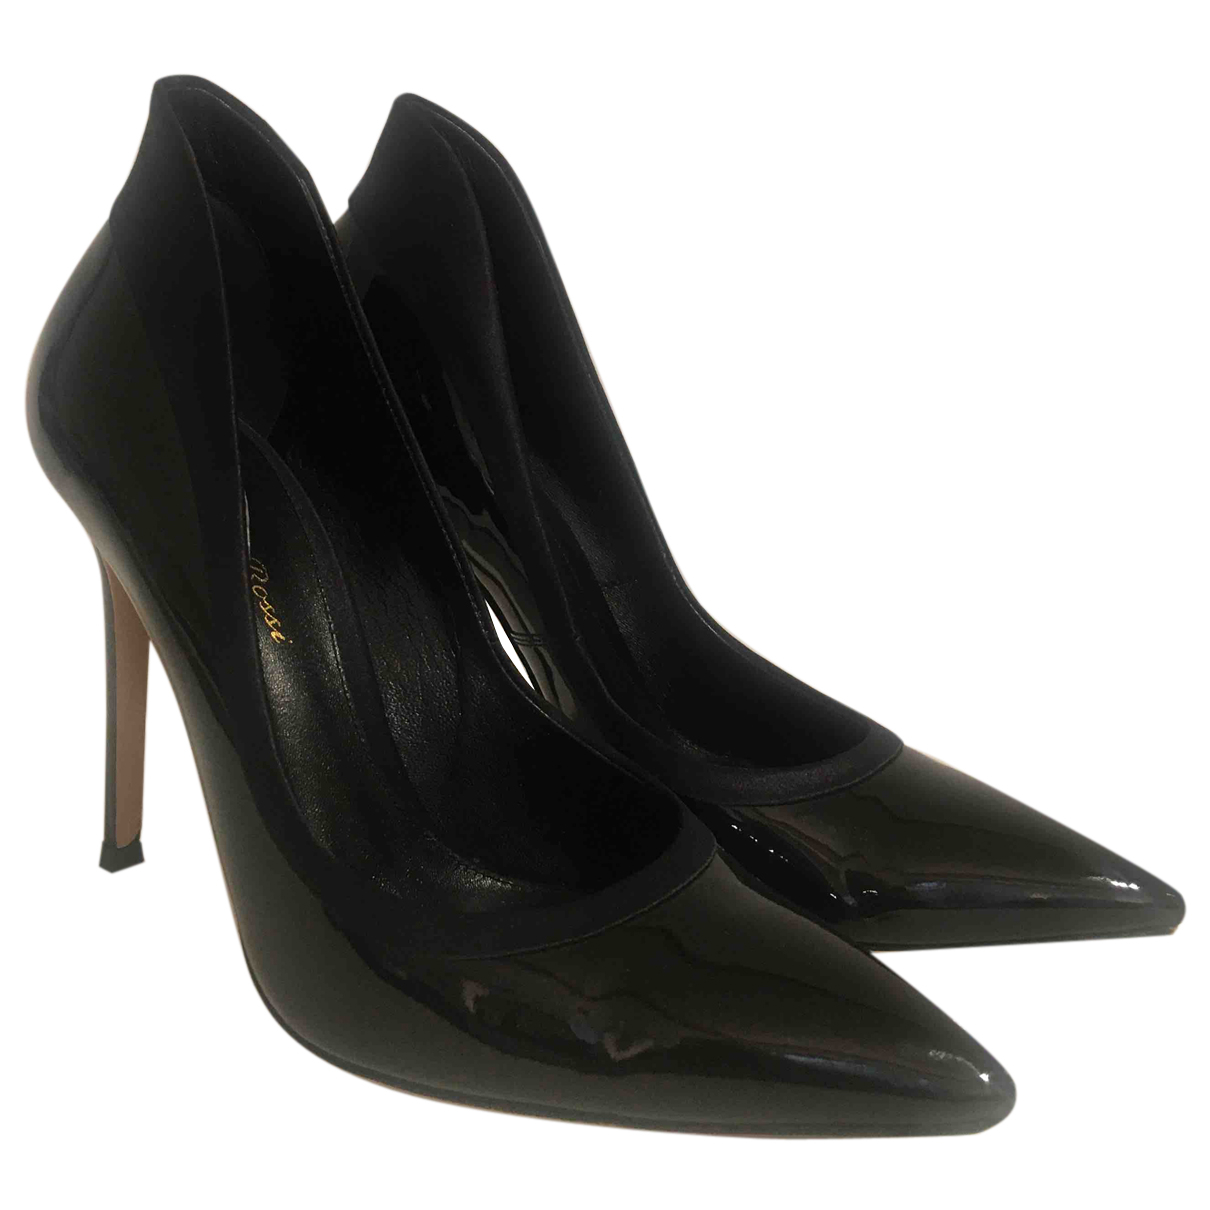 Gianvito Rossi N Black Patent leather Heels for Women 38 EU